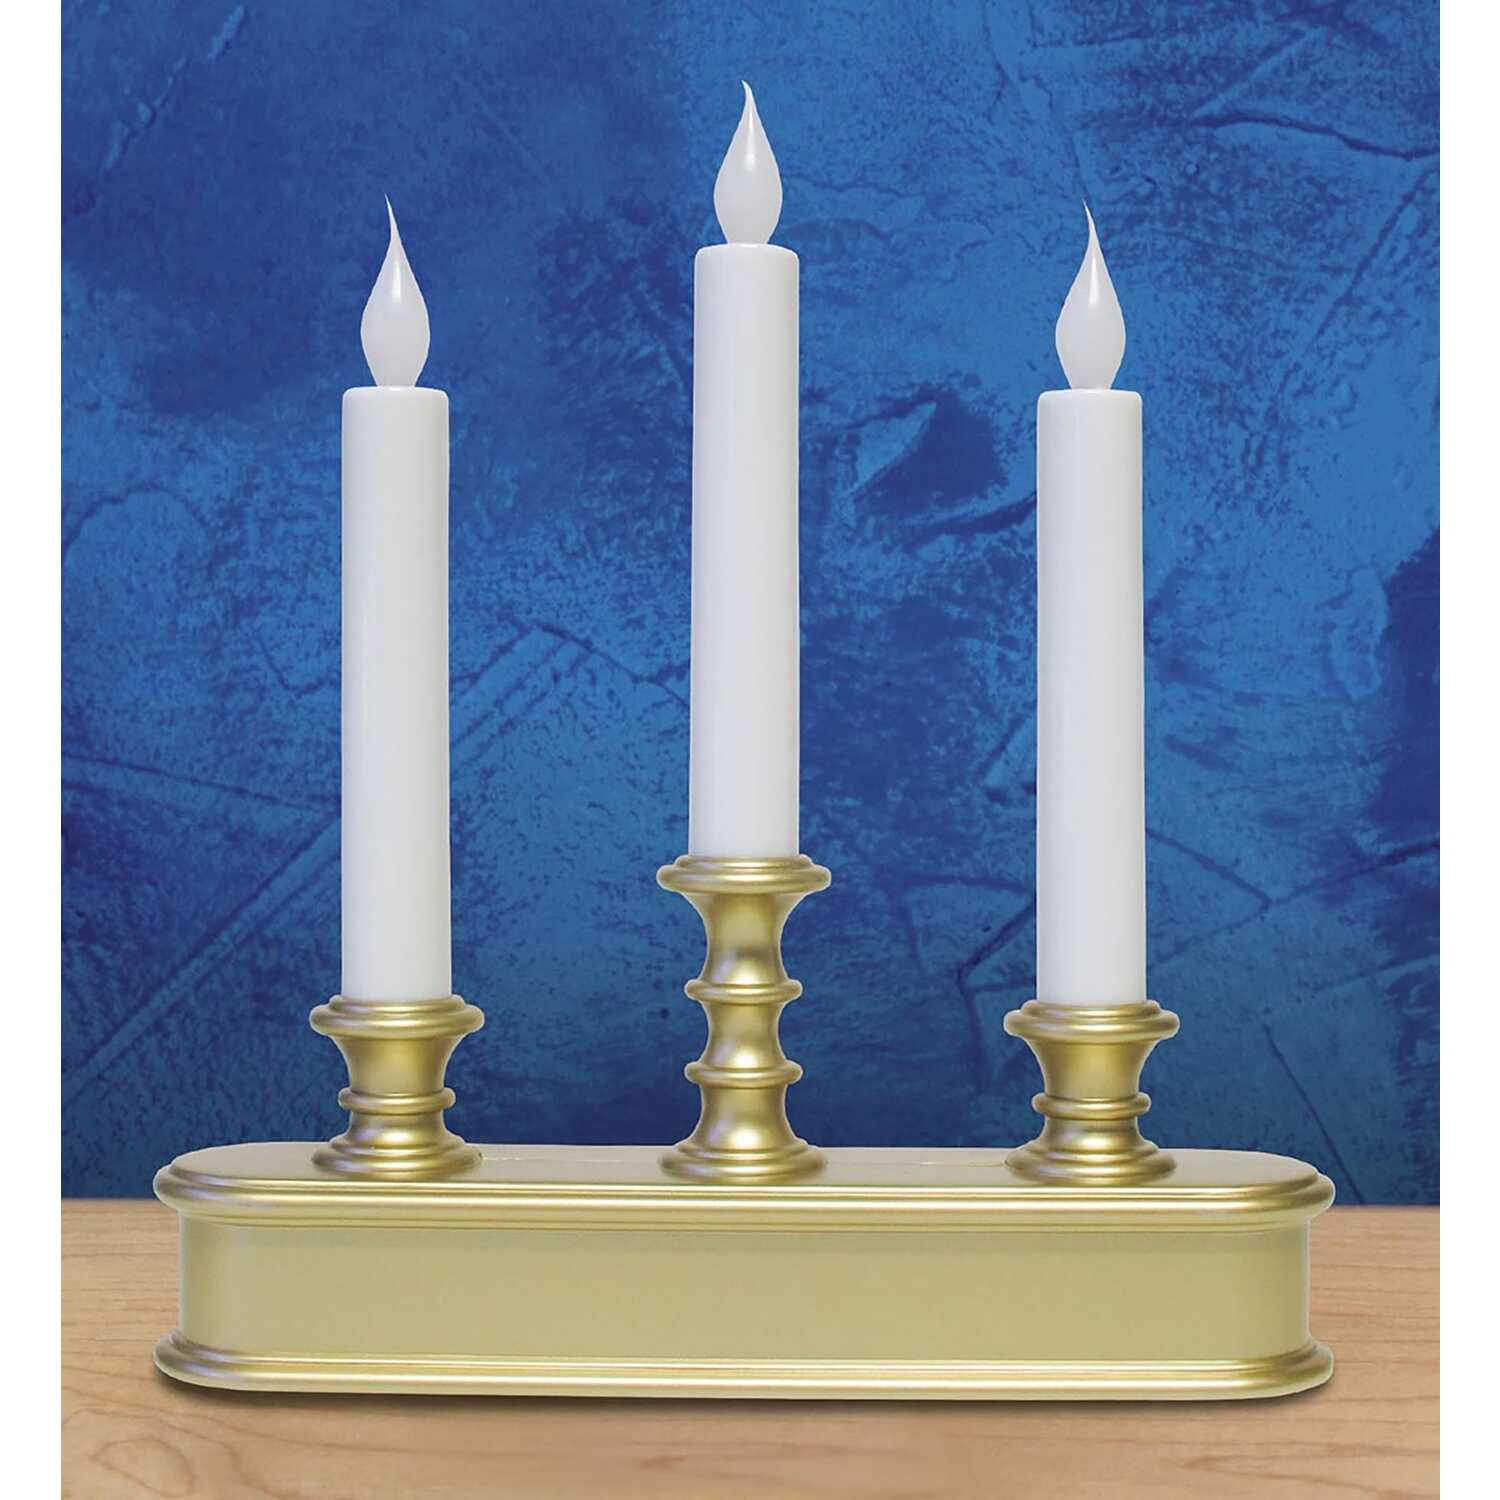 Celebrations  No Scent Brushed Gold  Auto Sensor  Candle  10 in. H